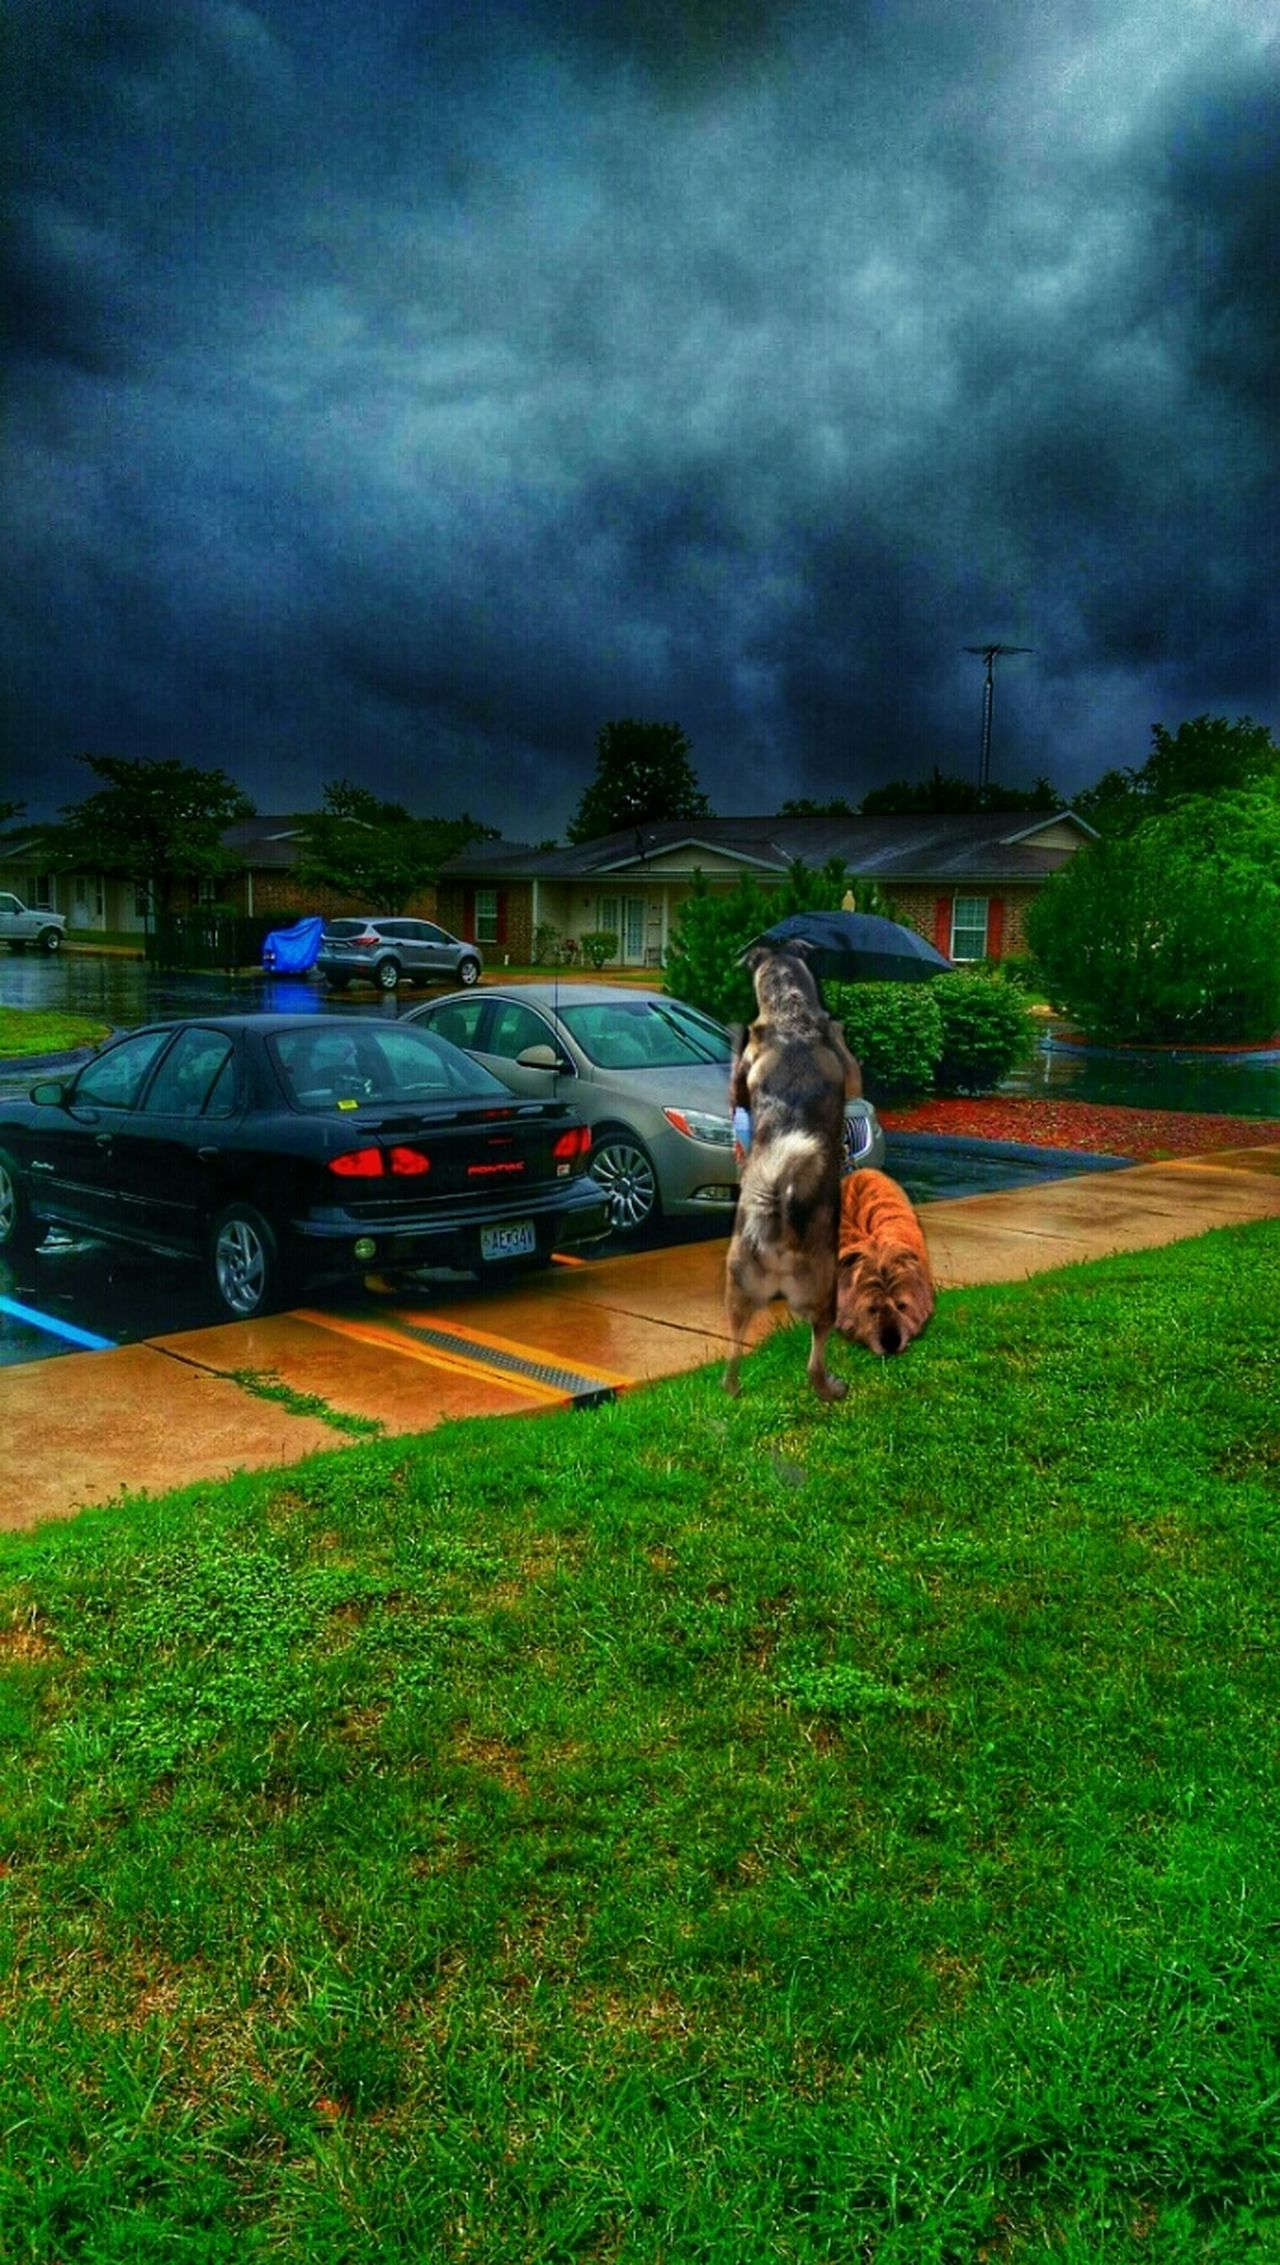 """https://youtu.be/7lPuYSSWNh8 """"Now that it's rainin' more than ever, we'll still have each other..."""" The K9GB My Dogs Are Cooler Than Your Kids Best Friends Family Matters The Impurist Rainy Day Stormembracing Skylovers Dark Clouds Dark Trees Darkness And Life We Are Nature Street Photography Musical Photos Lyricalartistry"""